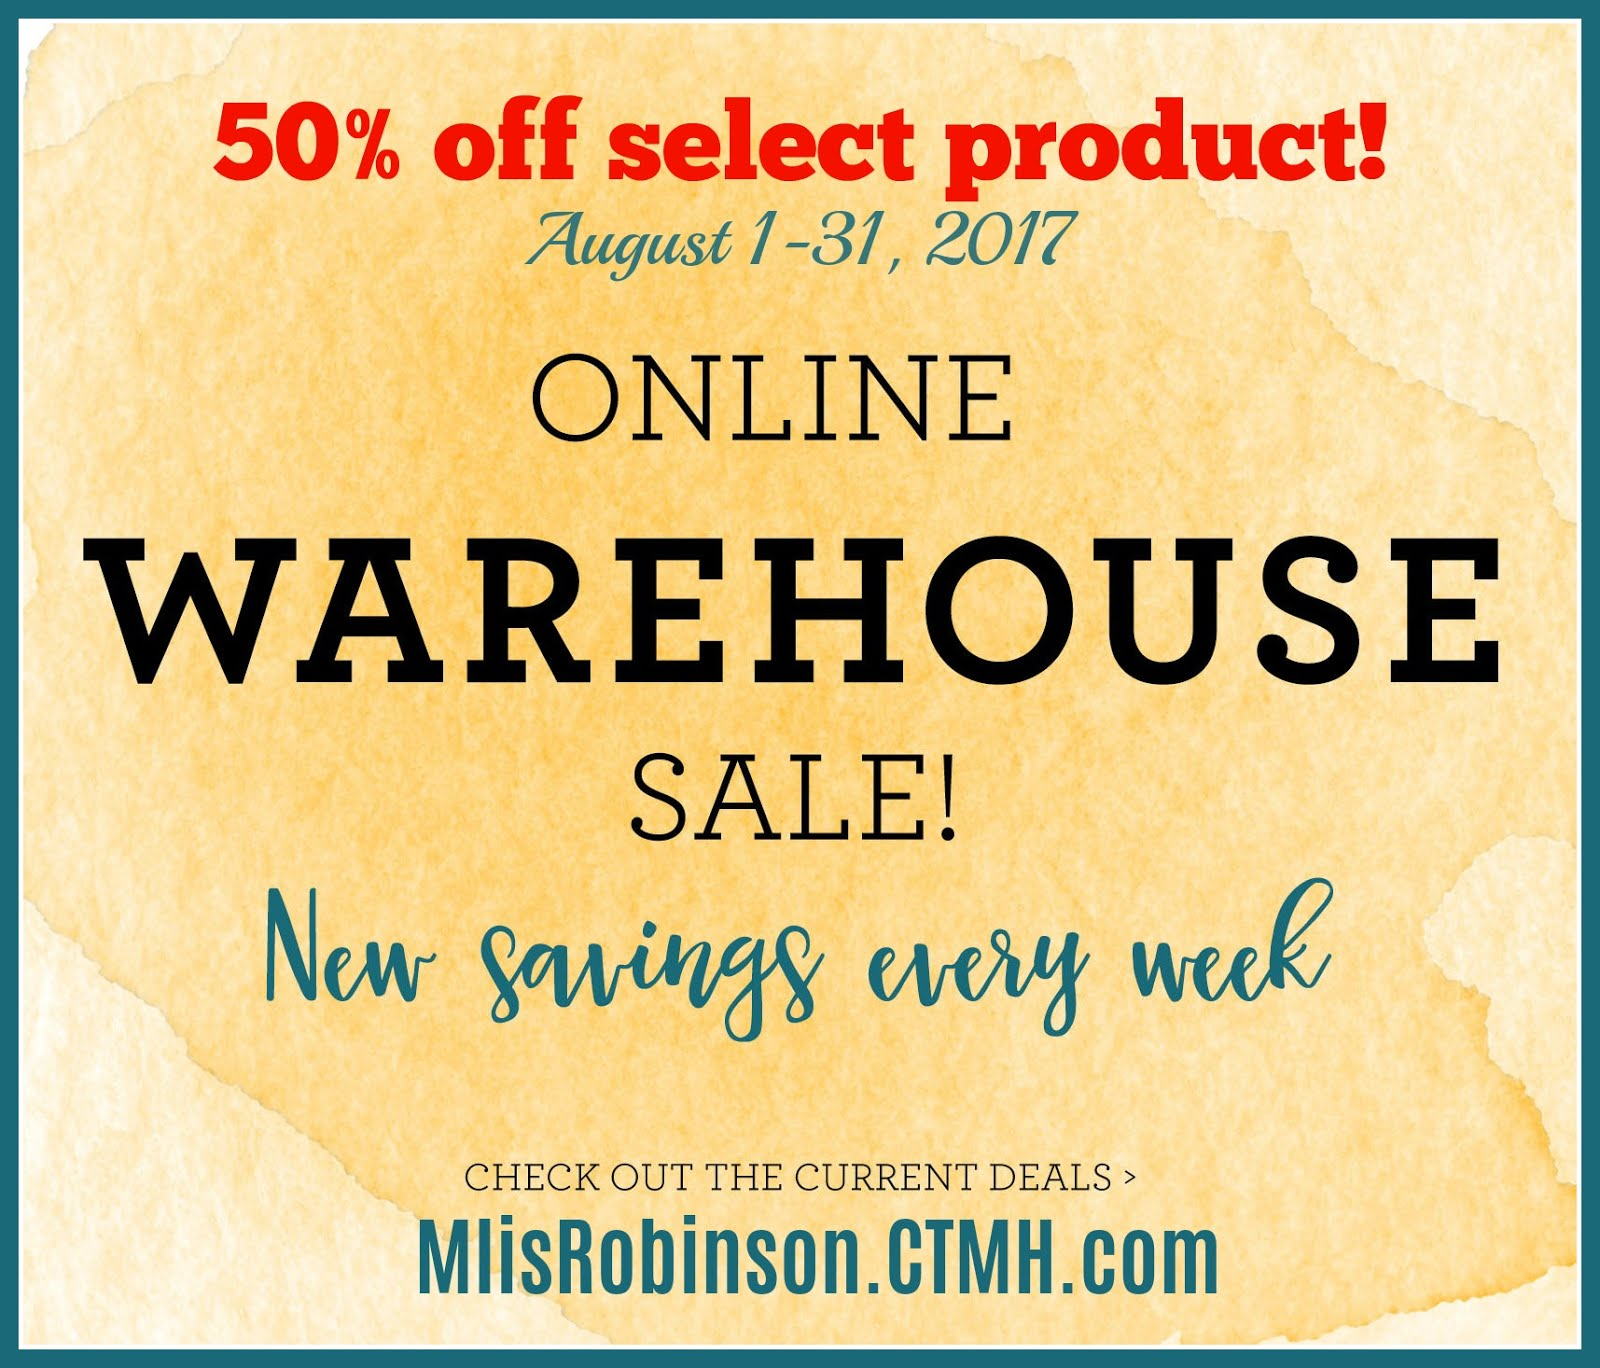 Warehouse Sale ALL MONTH LONG!